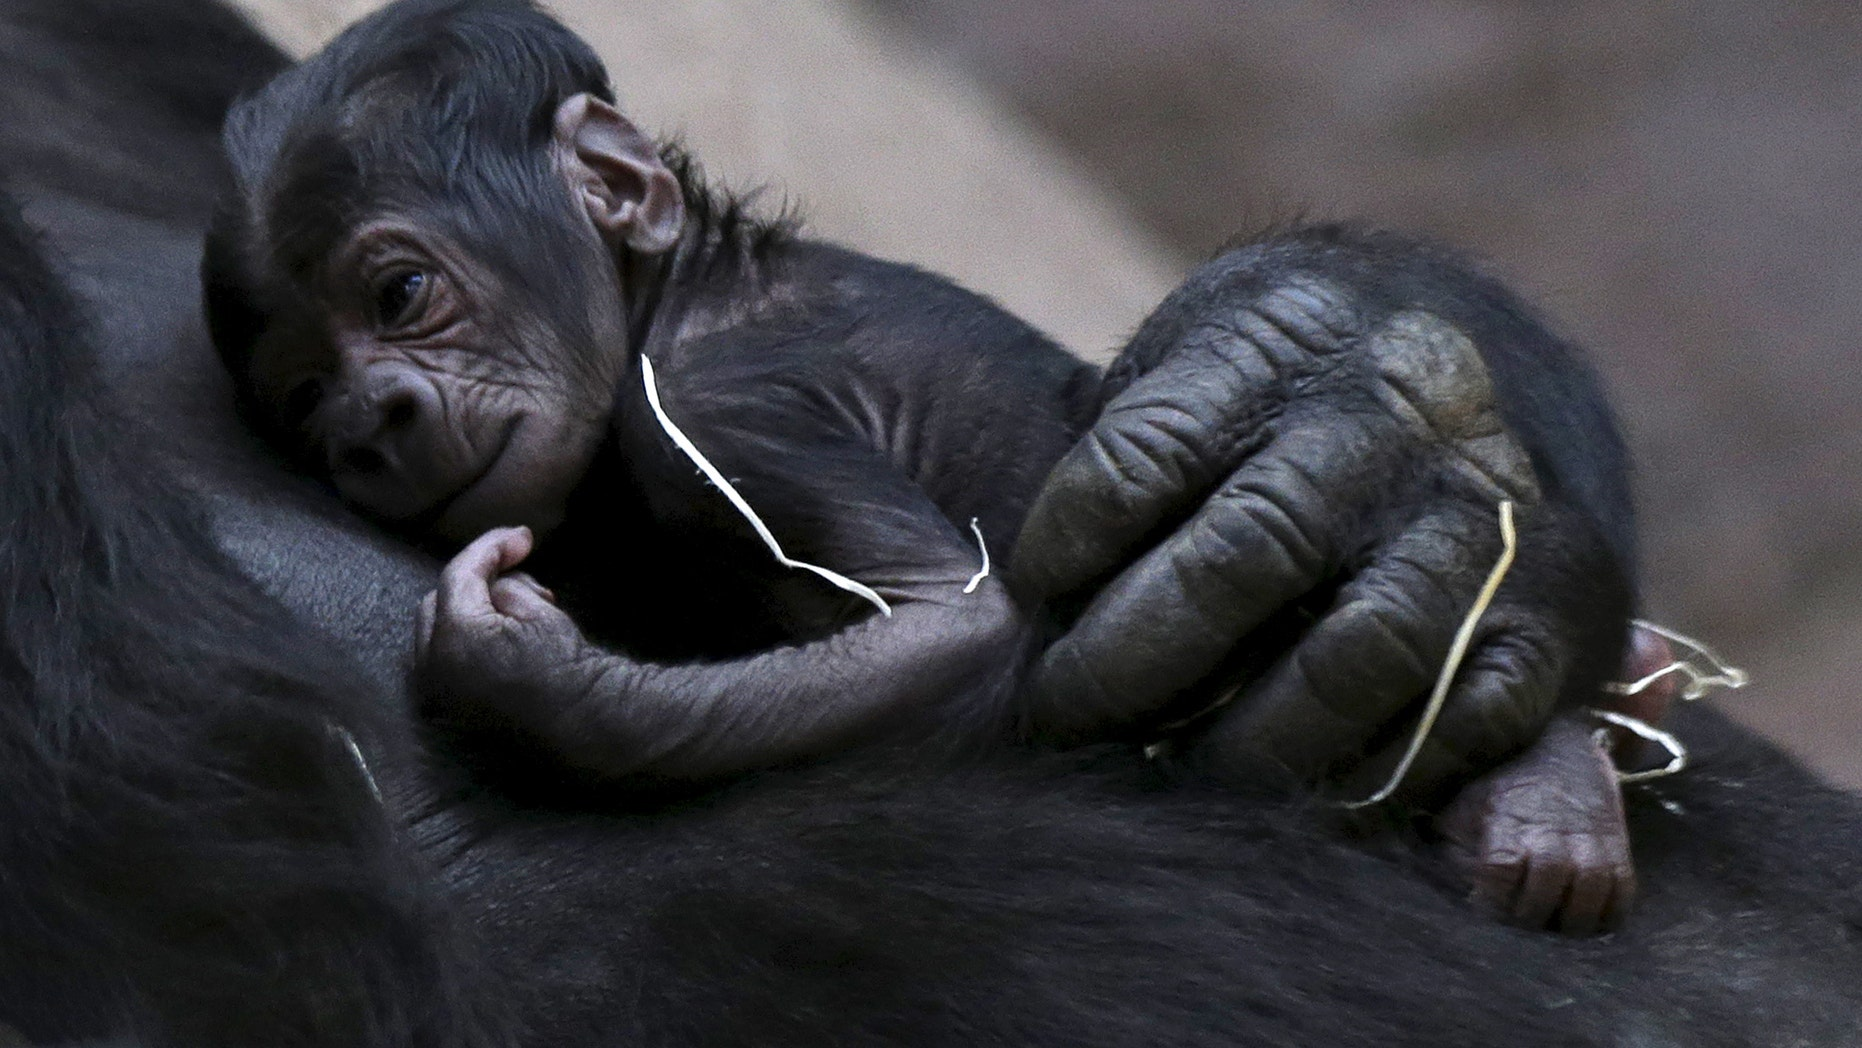 Shinda, a western lowland gorilla, holds her newborn baby in its enclosure at Prague Zoo, Czech Republic, April 24, 2016. (REUTERS/David W Cerny)